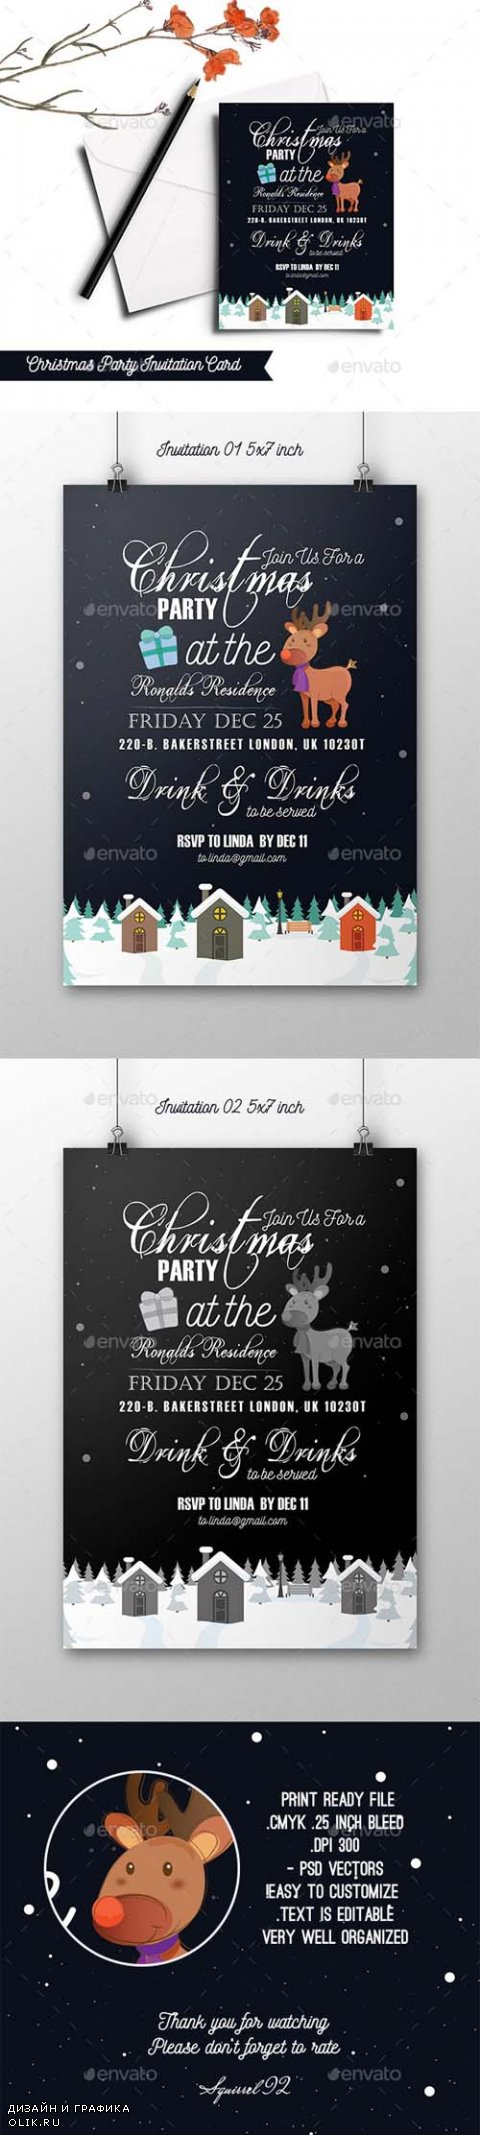 Christmas Party Invitation Card 13434475